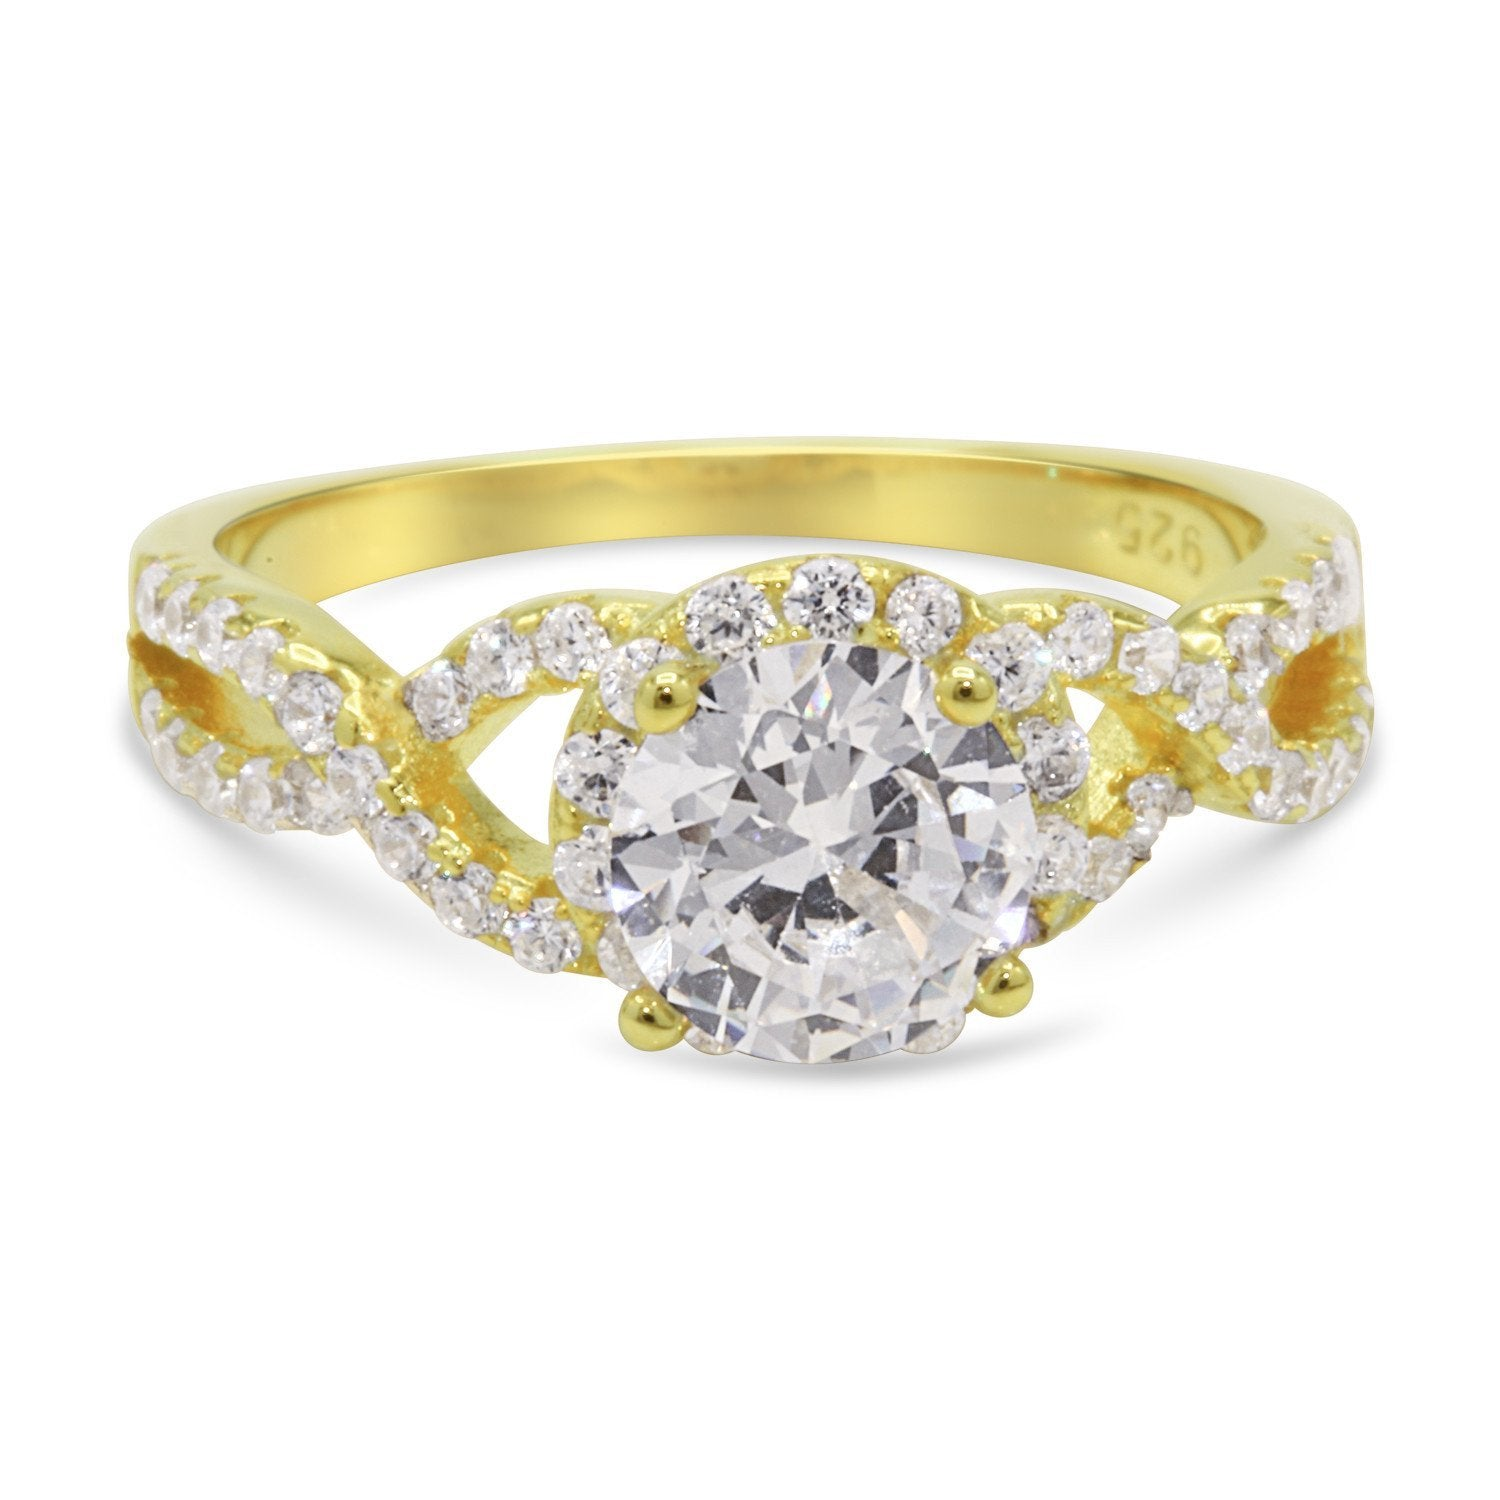 CZ 7mm Center Stone Sterling Silver Gold Plated Crossover Halo Engagement Ring